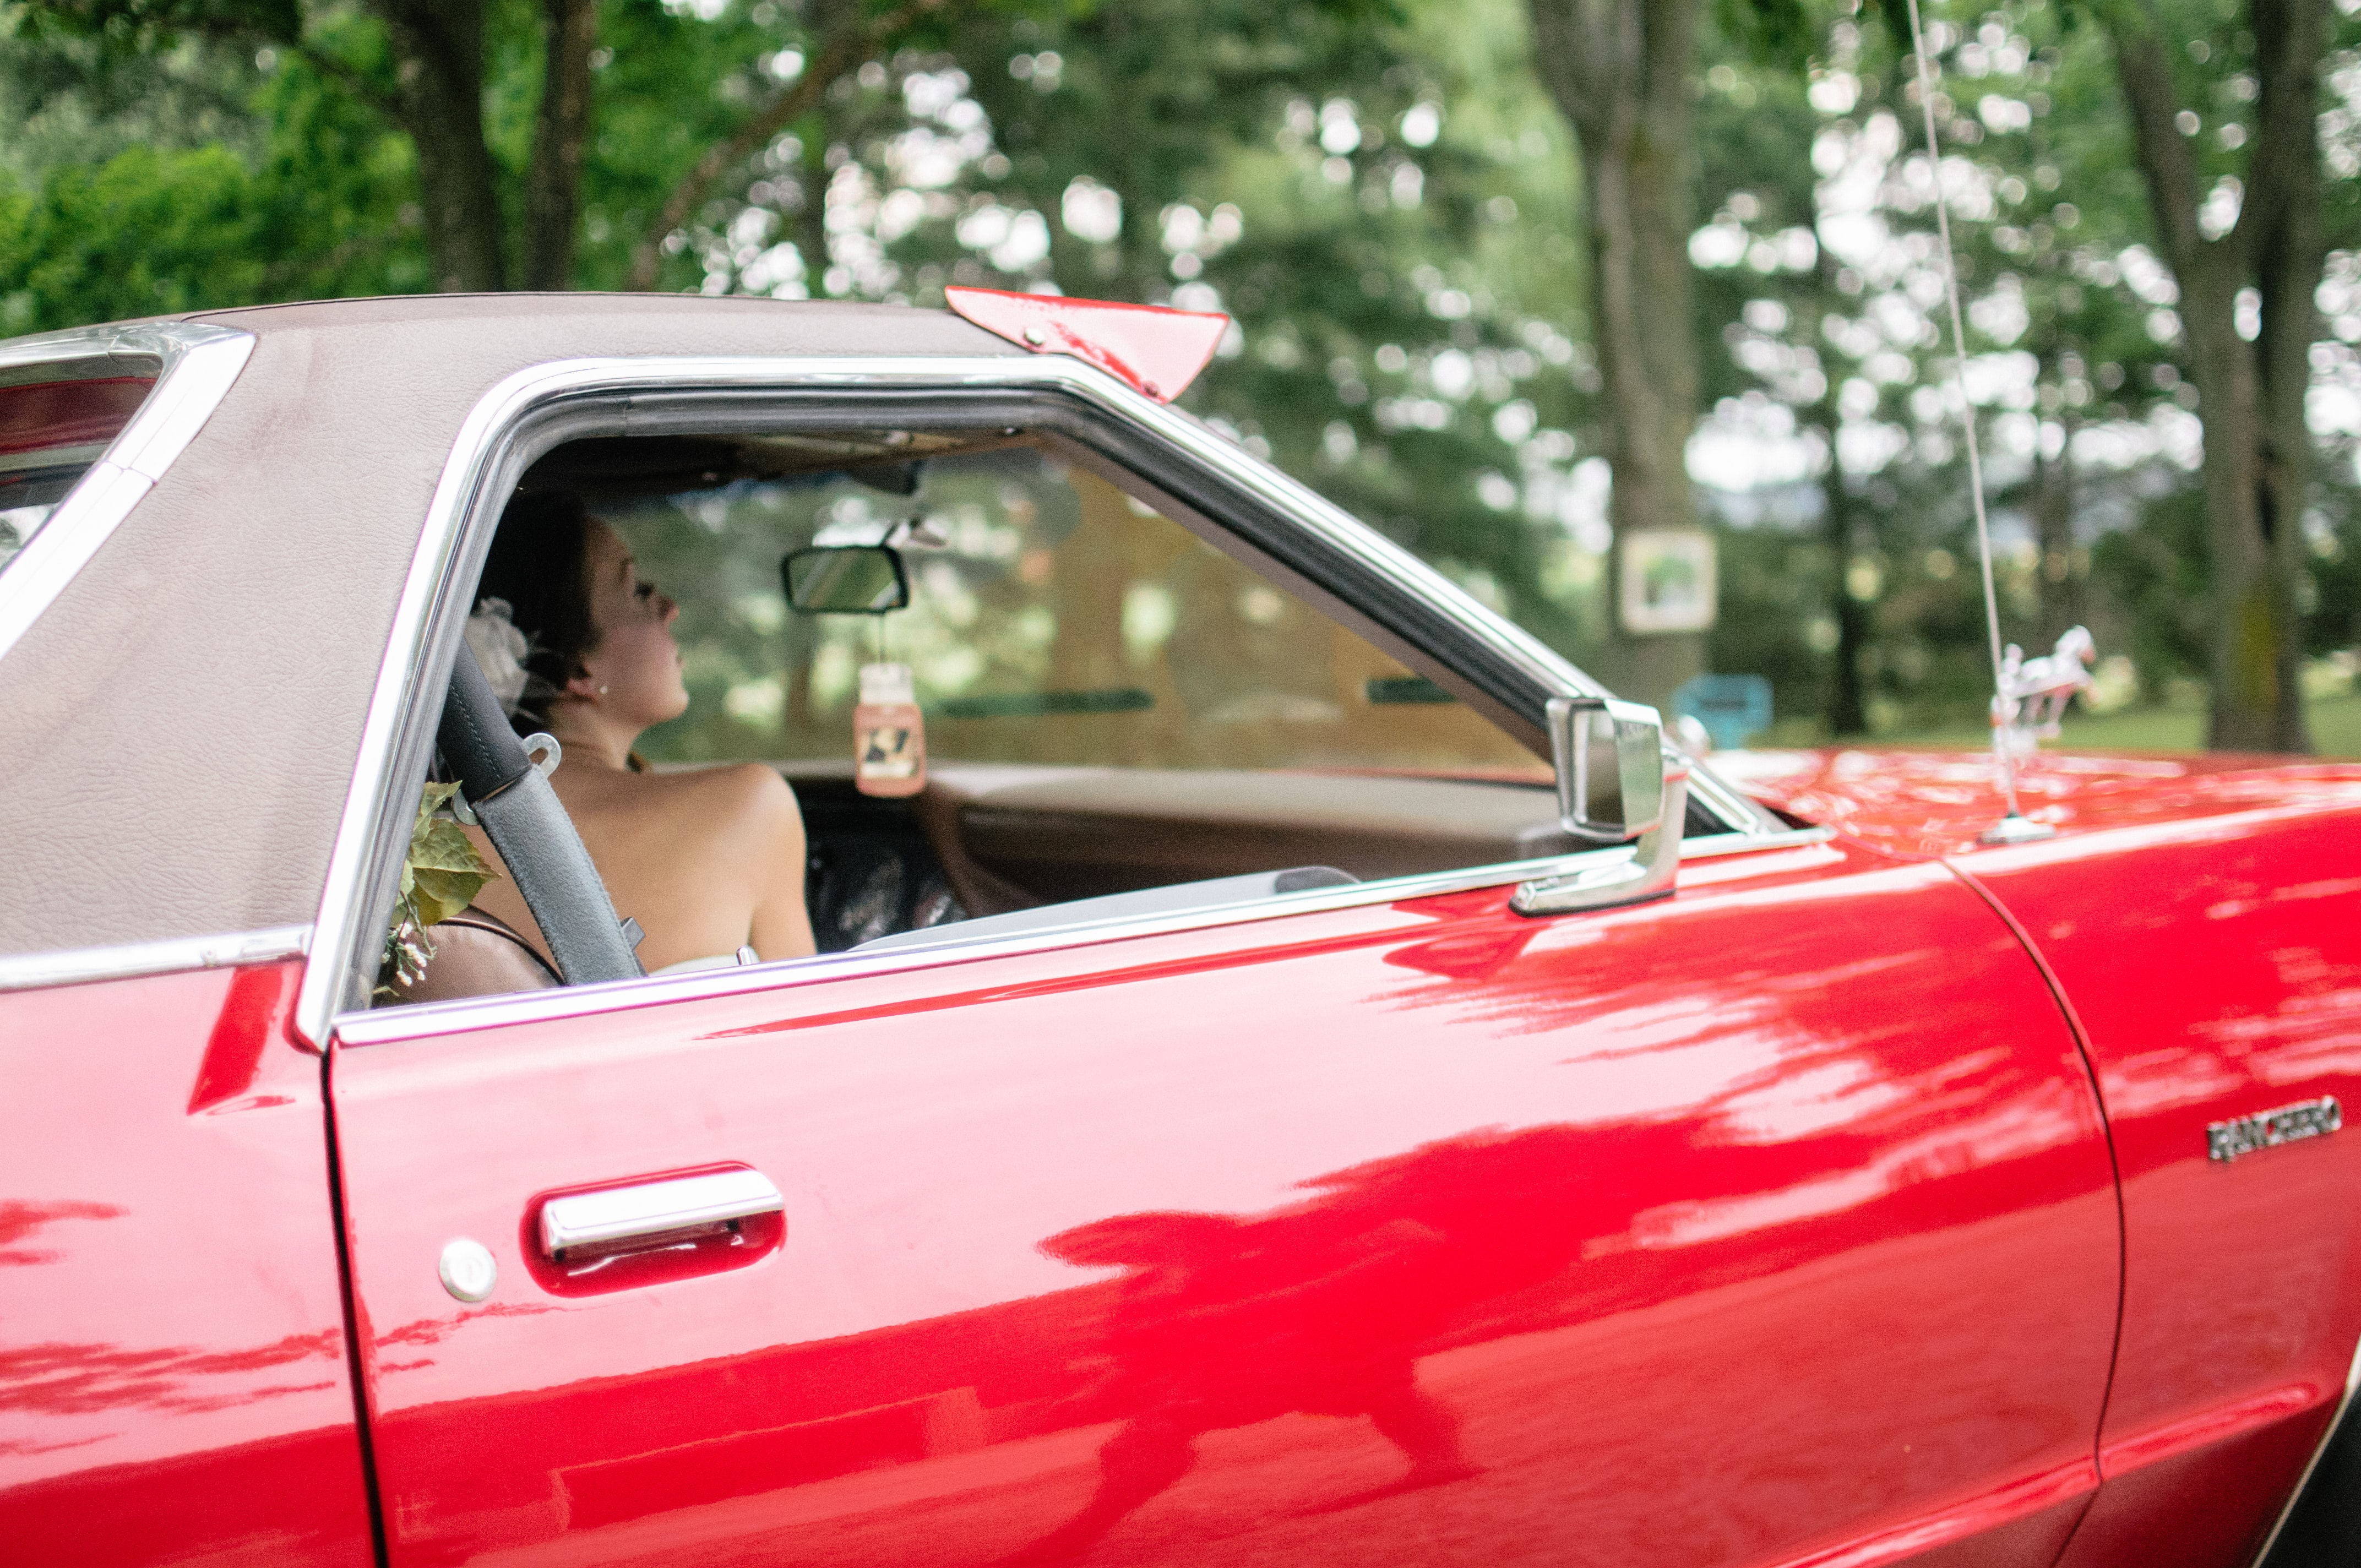 woman riding on red coupe